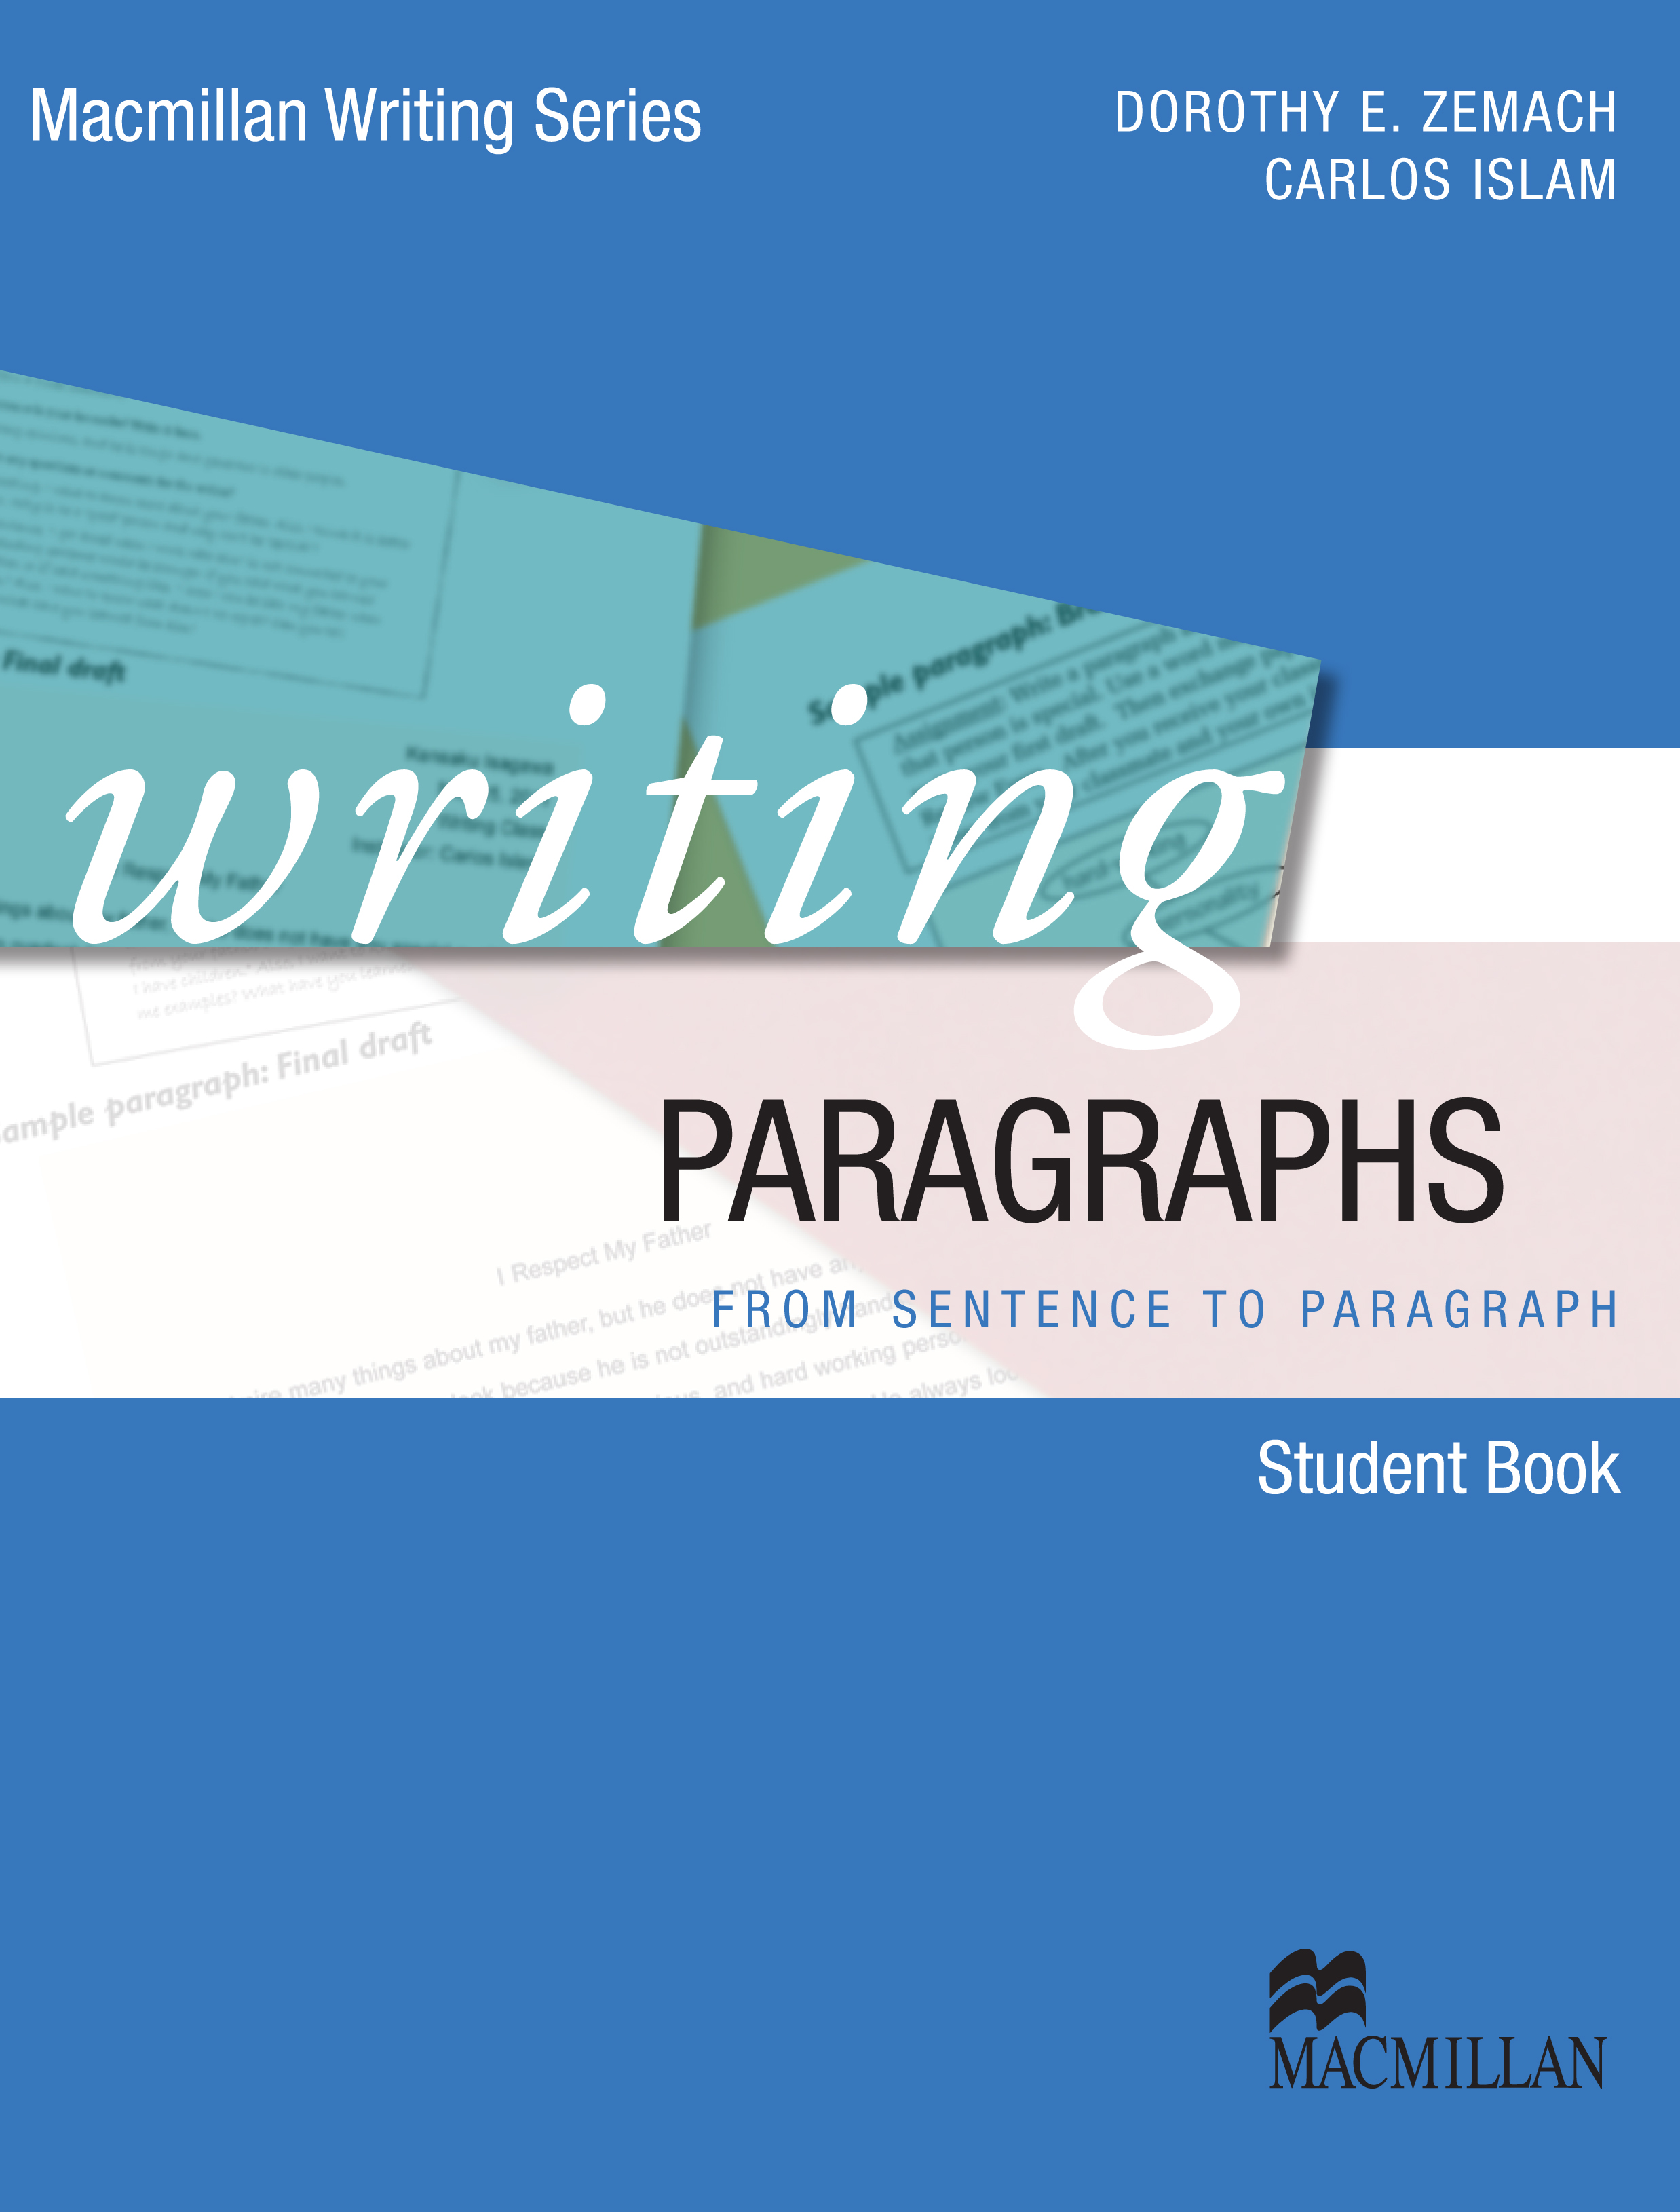 Macmillan Writing Series Writing Paragraphs